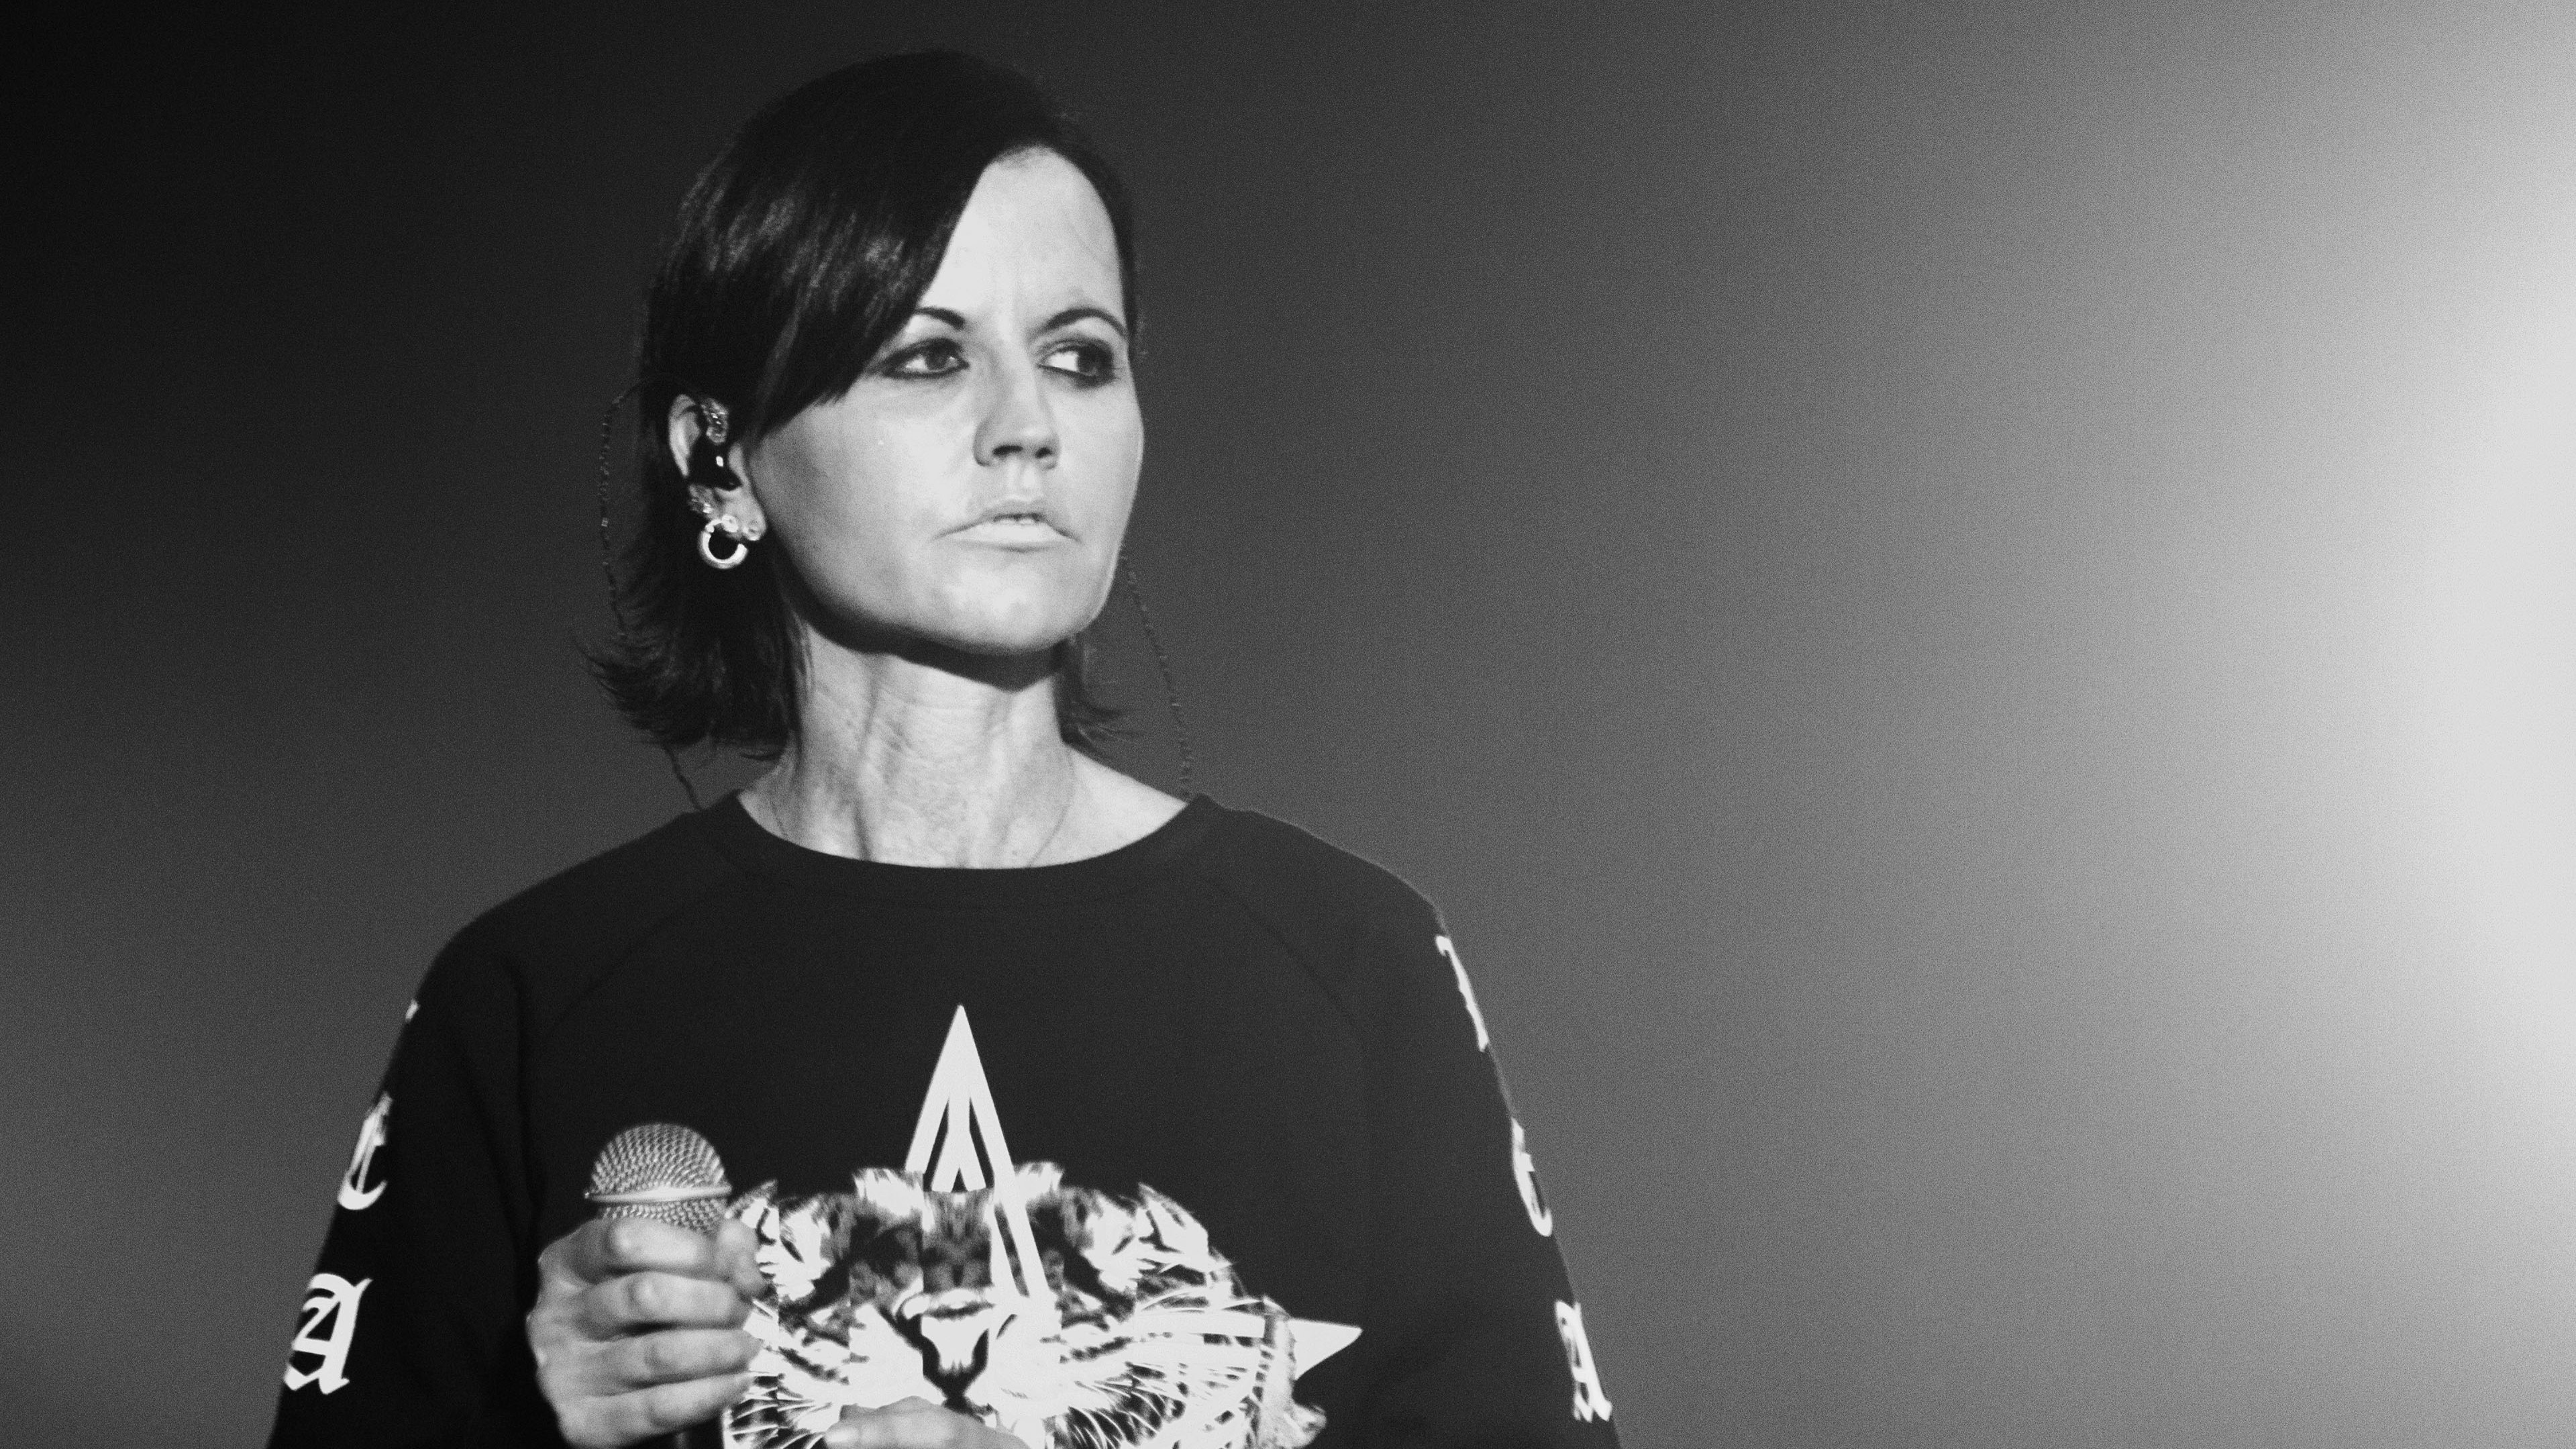 The Cranberries tributo a Dolores O'Riordan